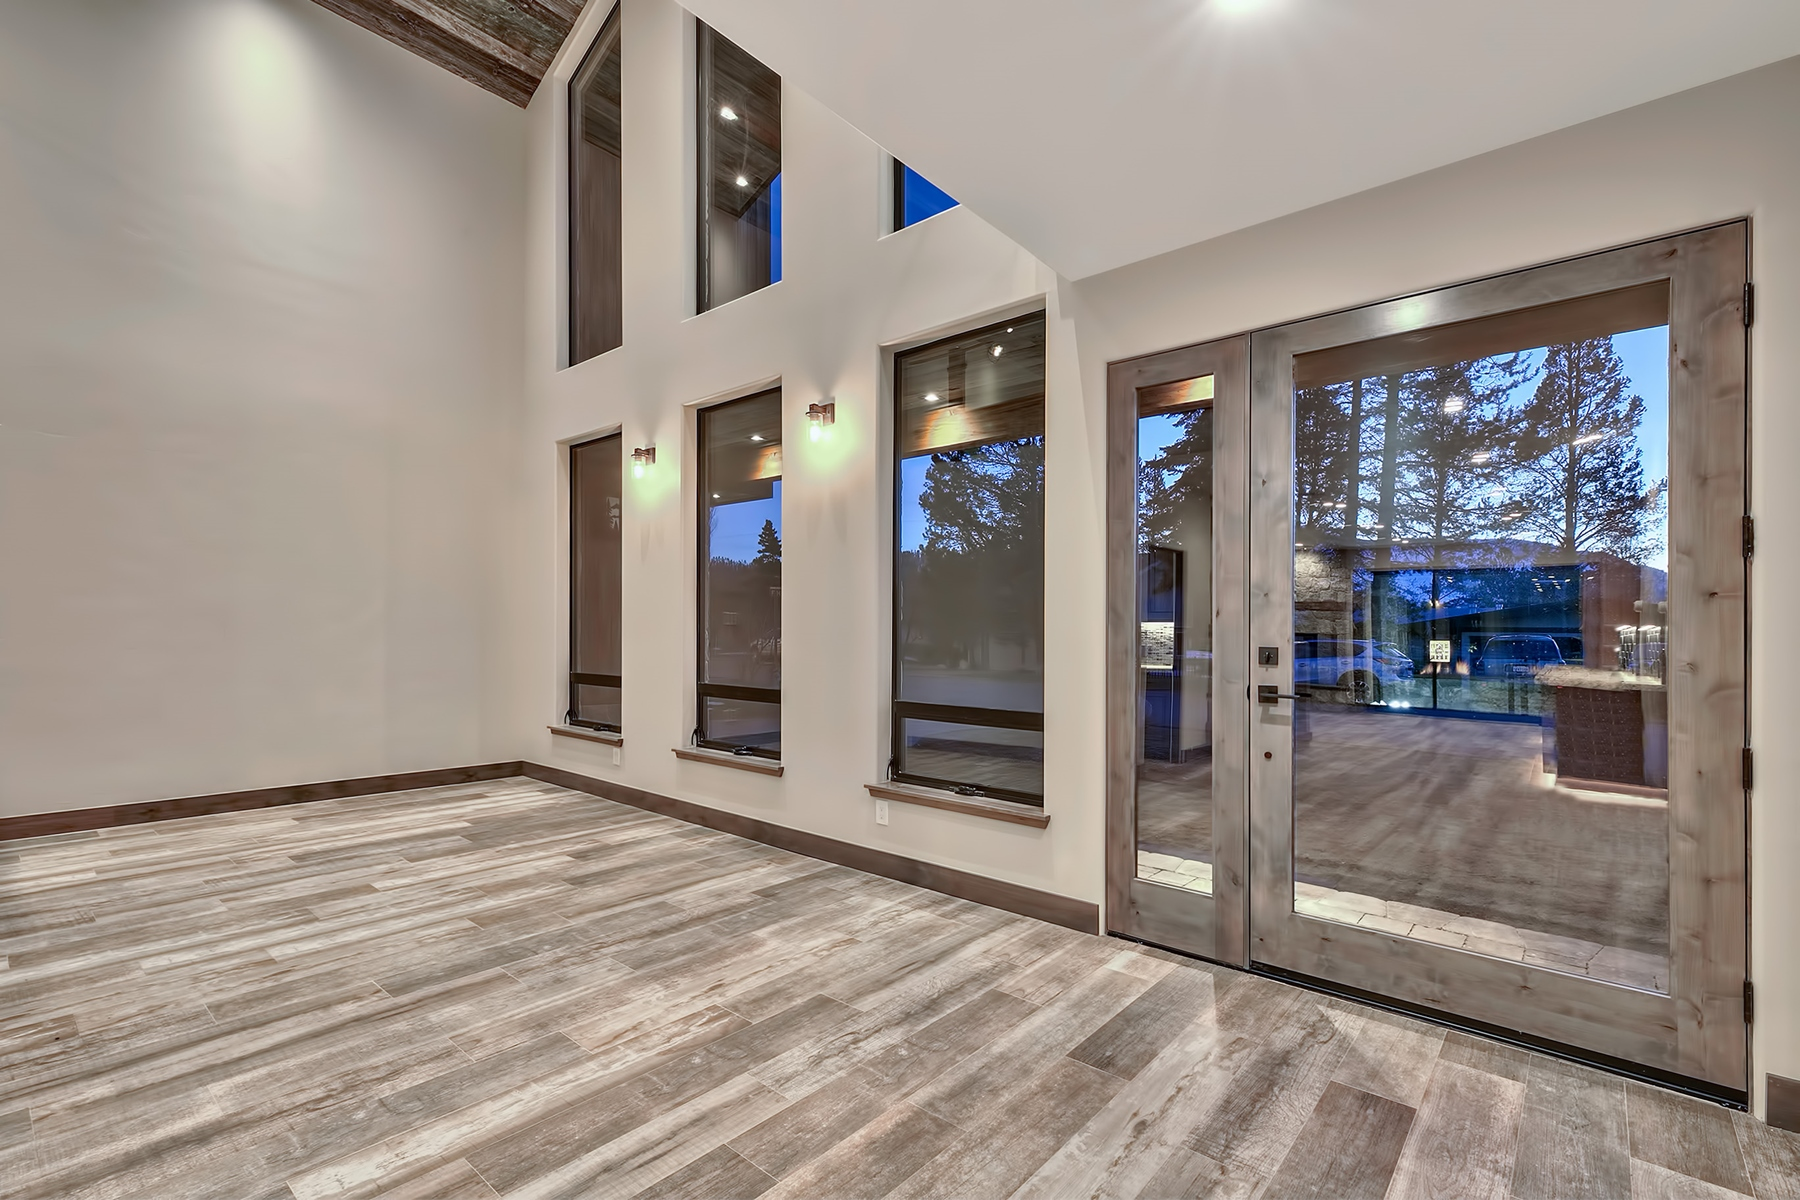 Additional photo for property listing at 565 Lucerne Way, South Lake Tahoe CA 96150 565 Lucerne Way South Lake Tahoe, California 96150 United States